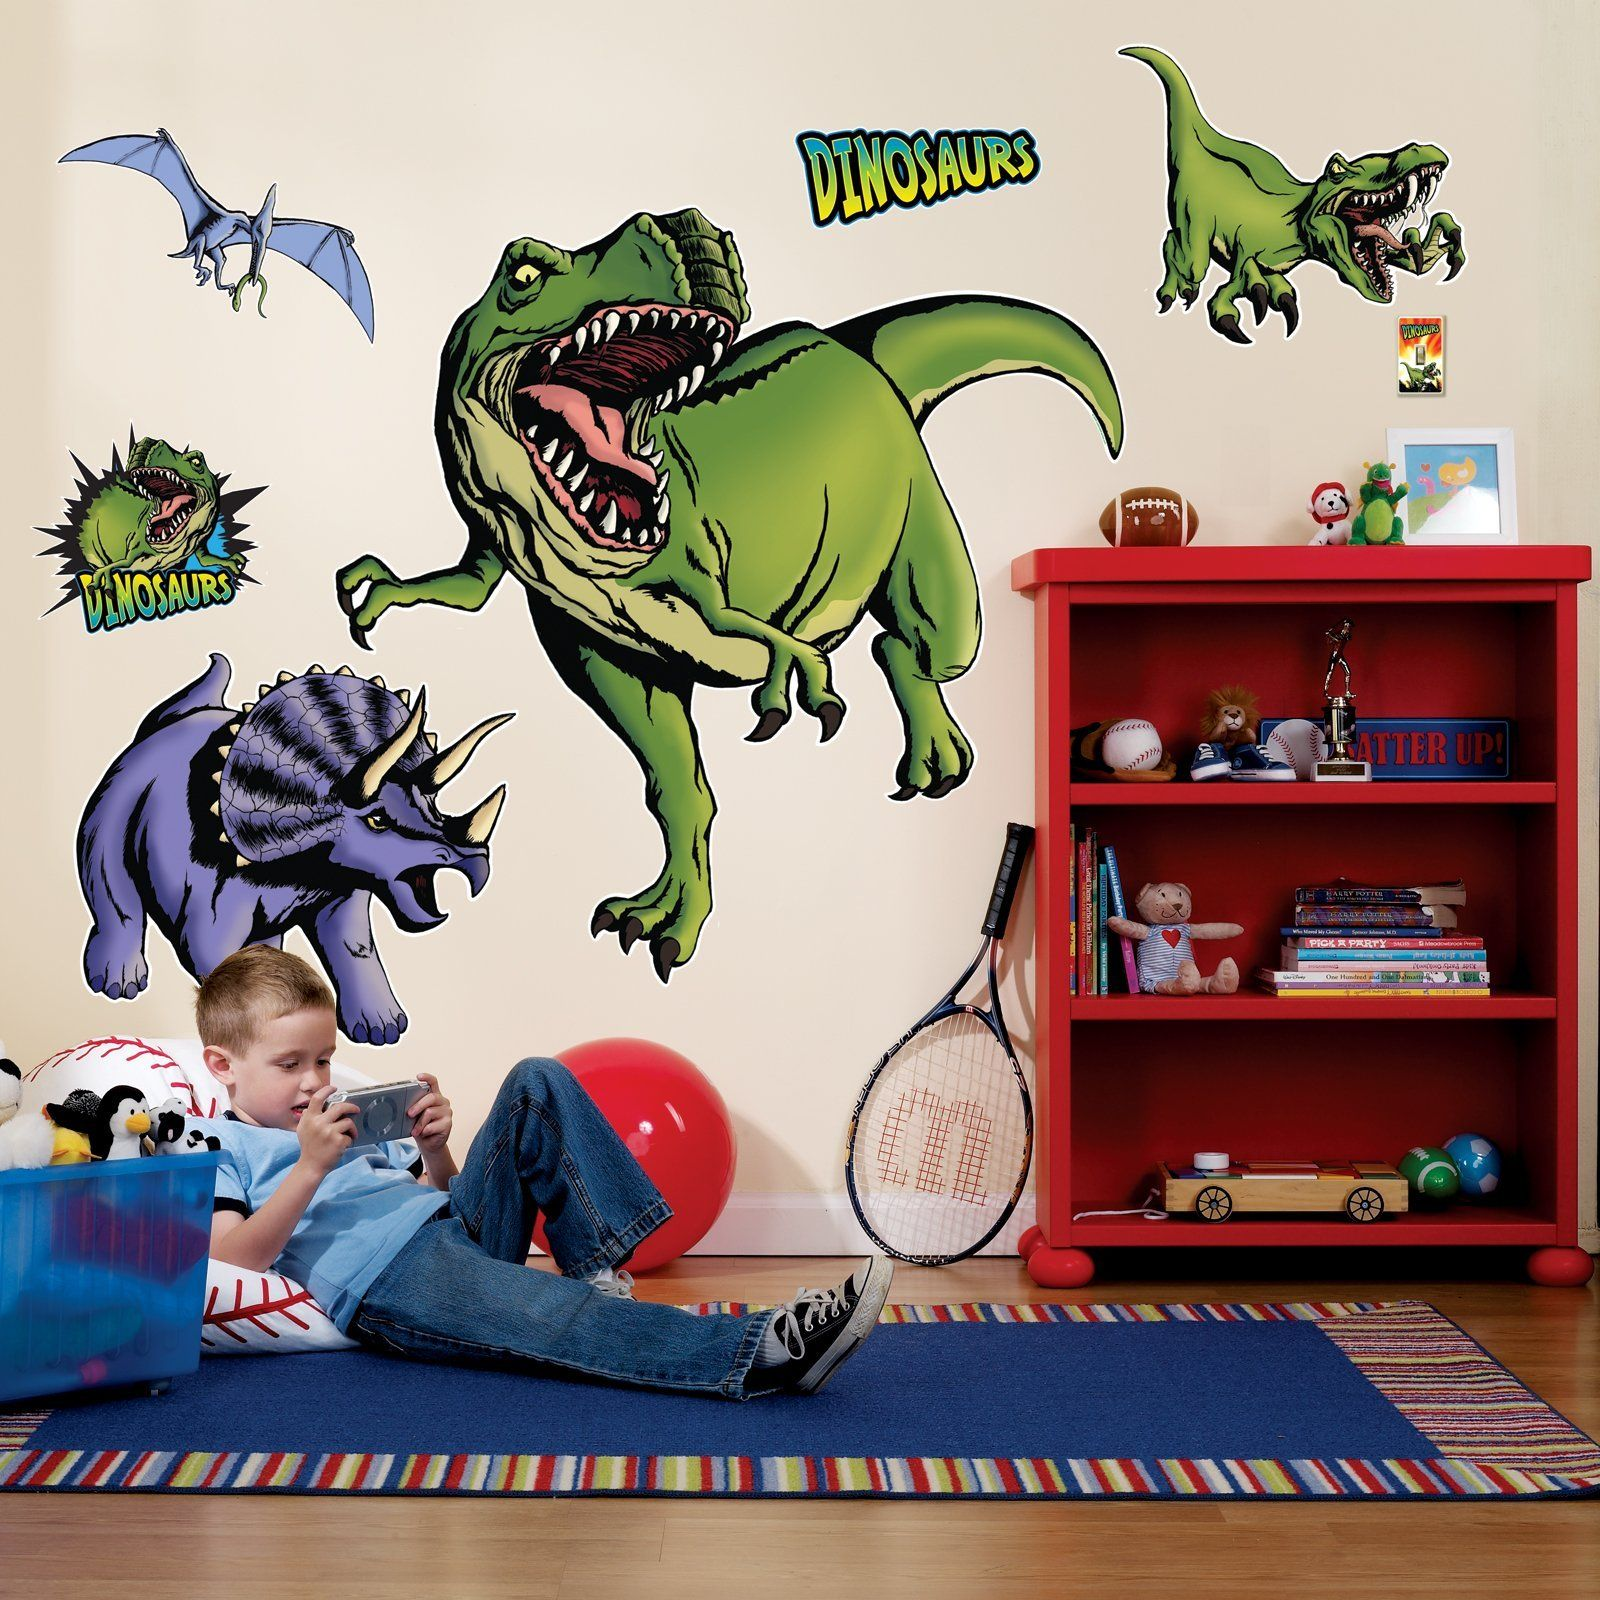 Dinosaurs Giant Wall Decals Dinosaur Wall Stickers Amazon Com